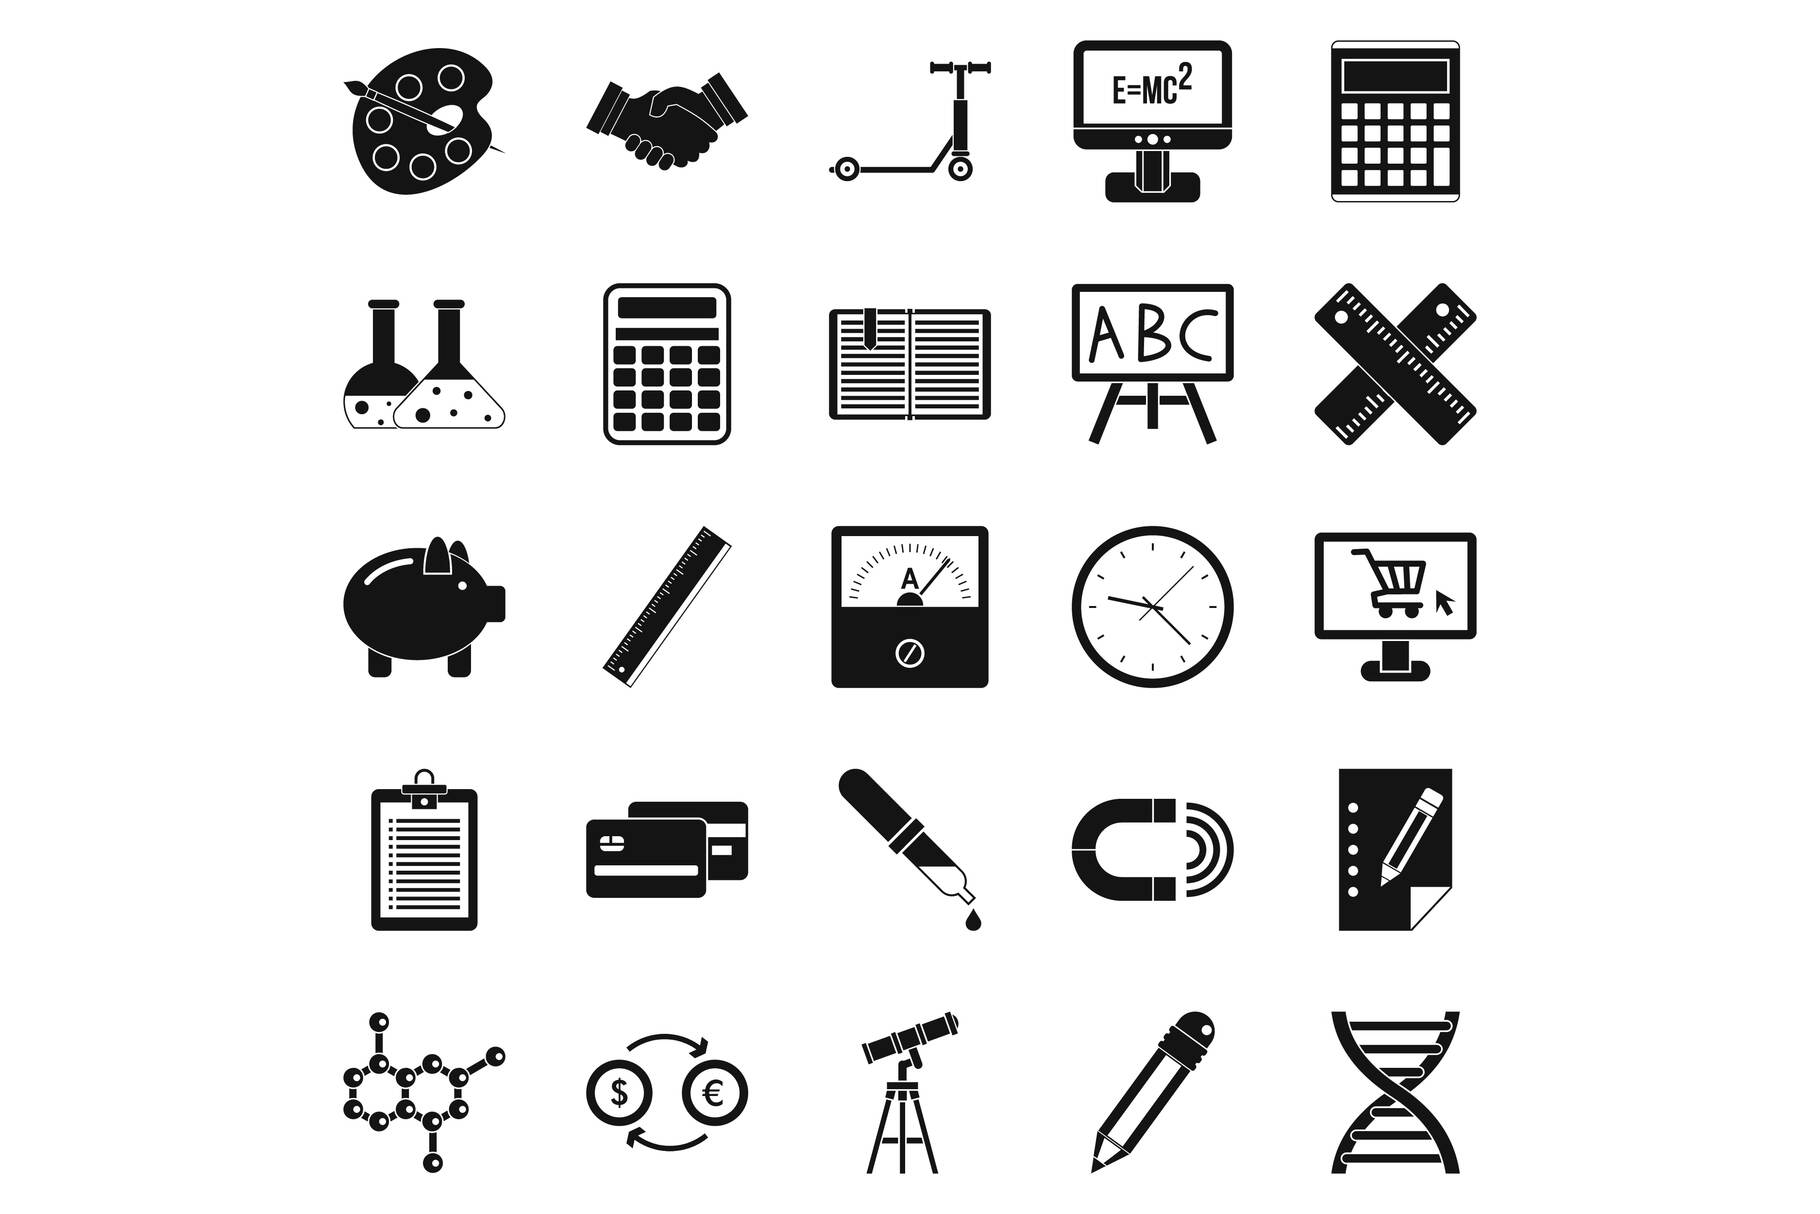 Numerator icons set, simple style example image 1